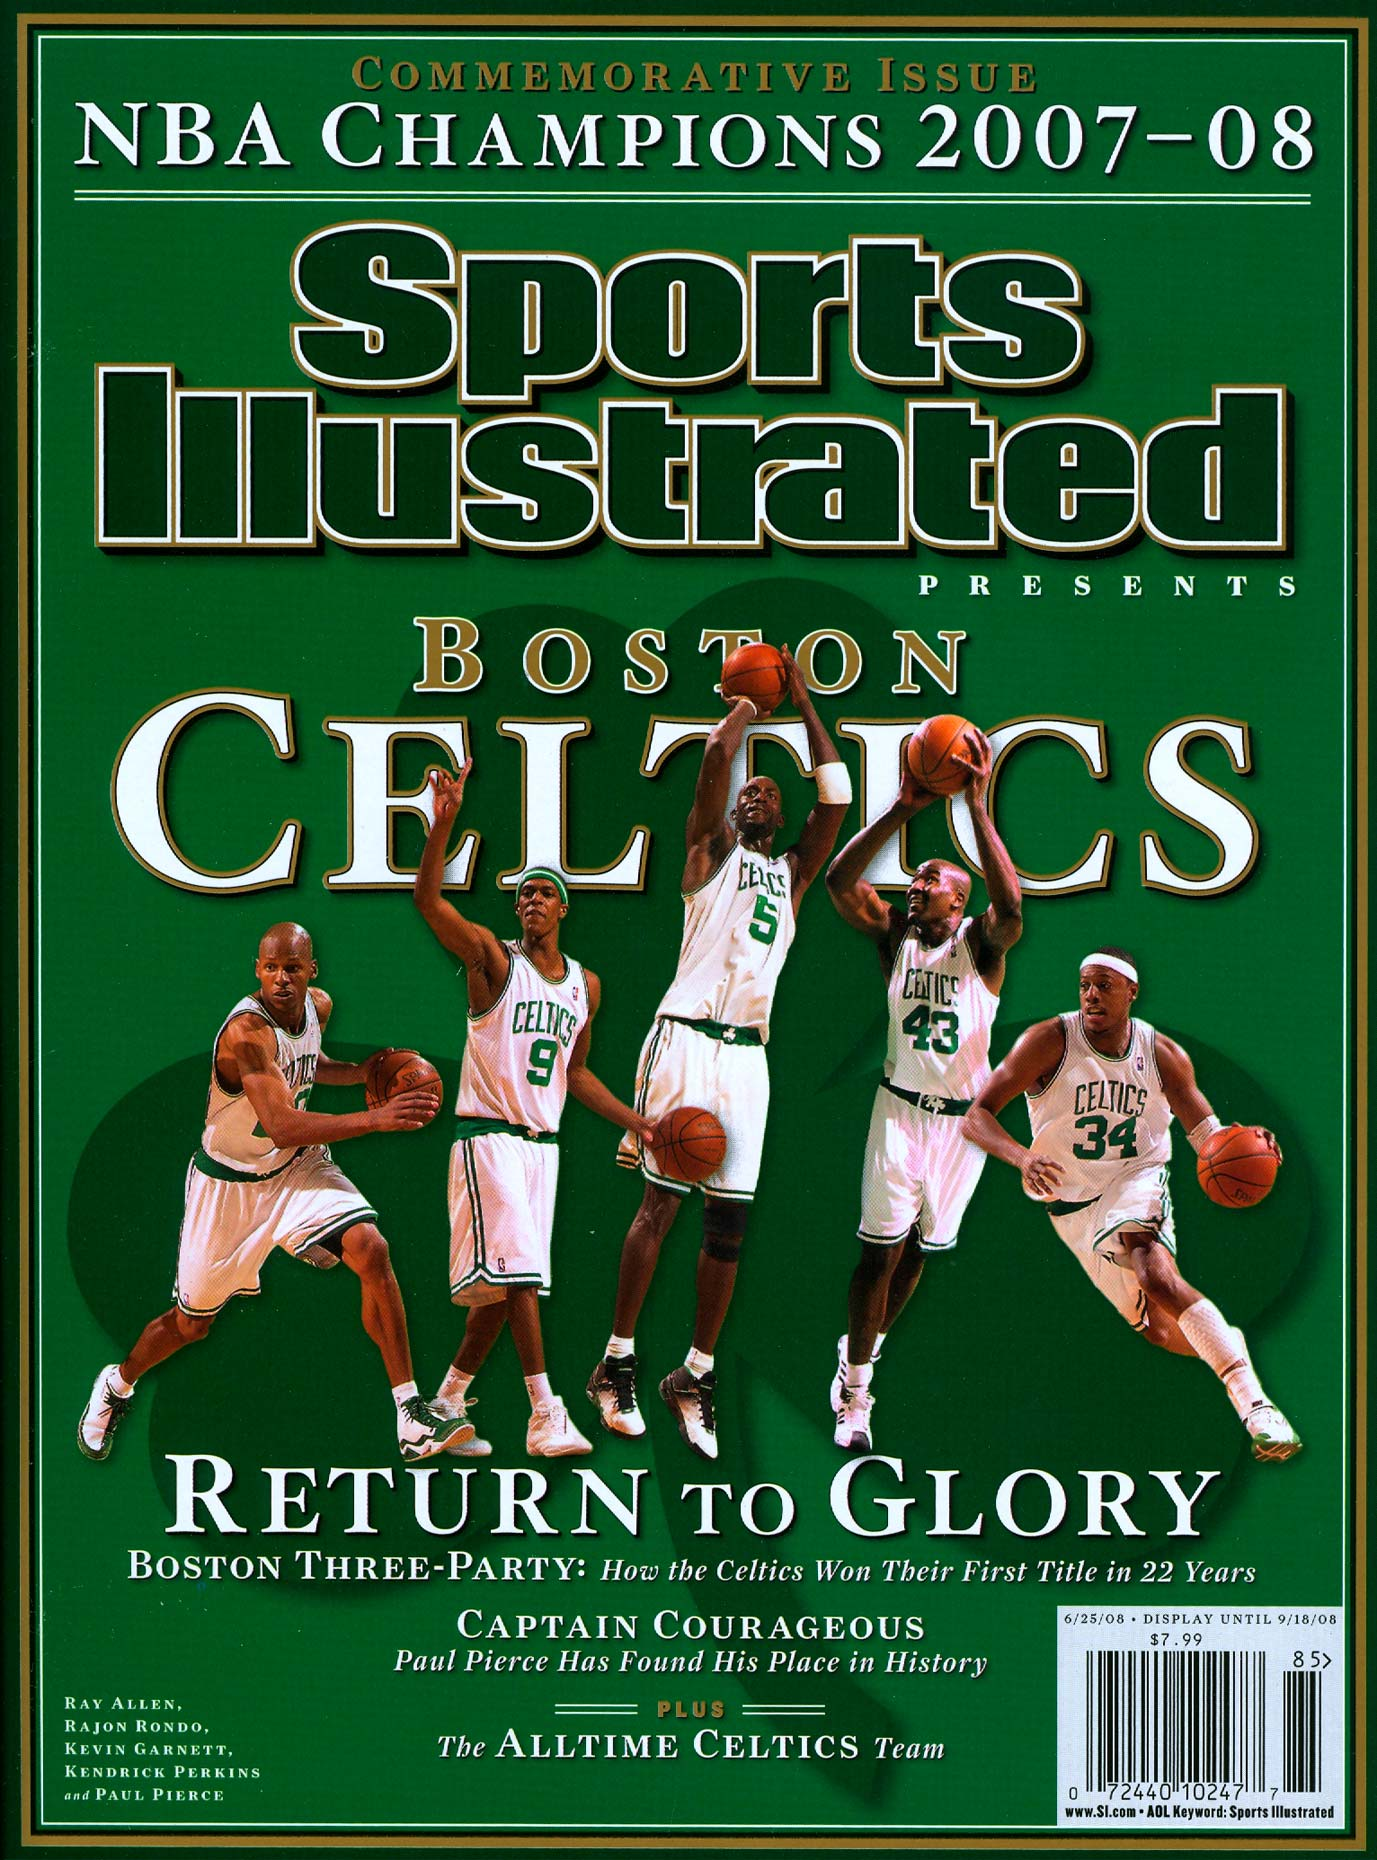 Boston Celtics | NBA Champions 2008 | Sports Illustrated Cover